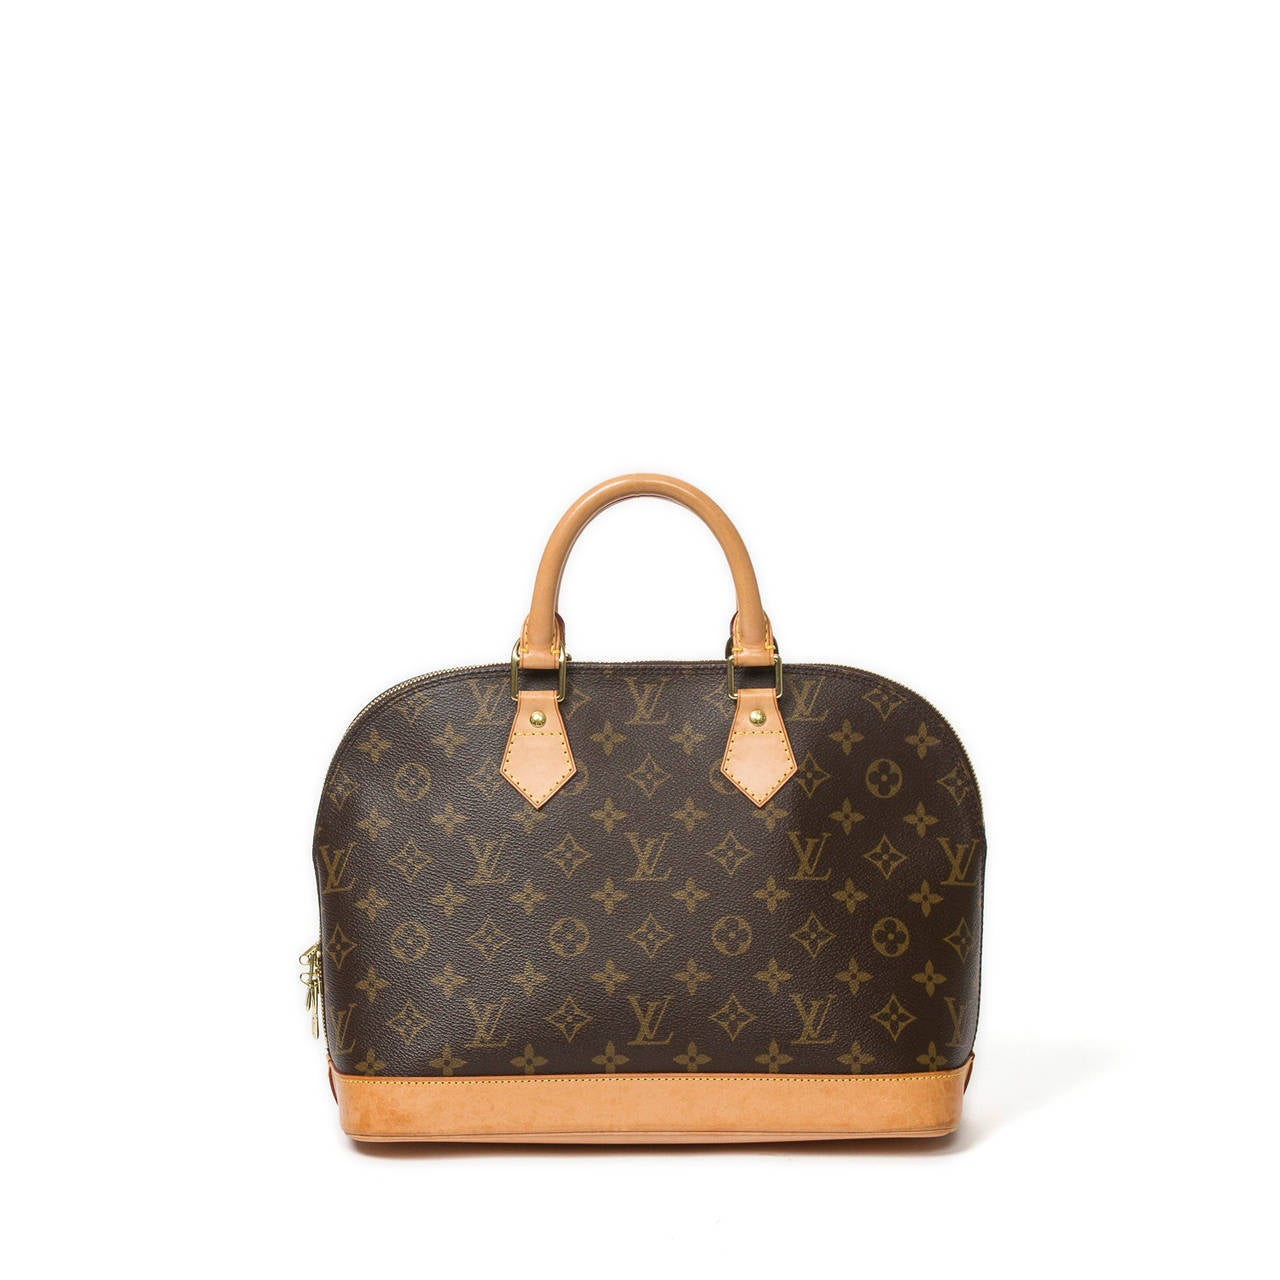 Louis vuitton date code lookup in Perth